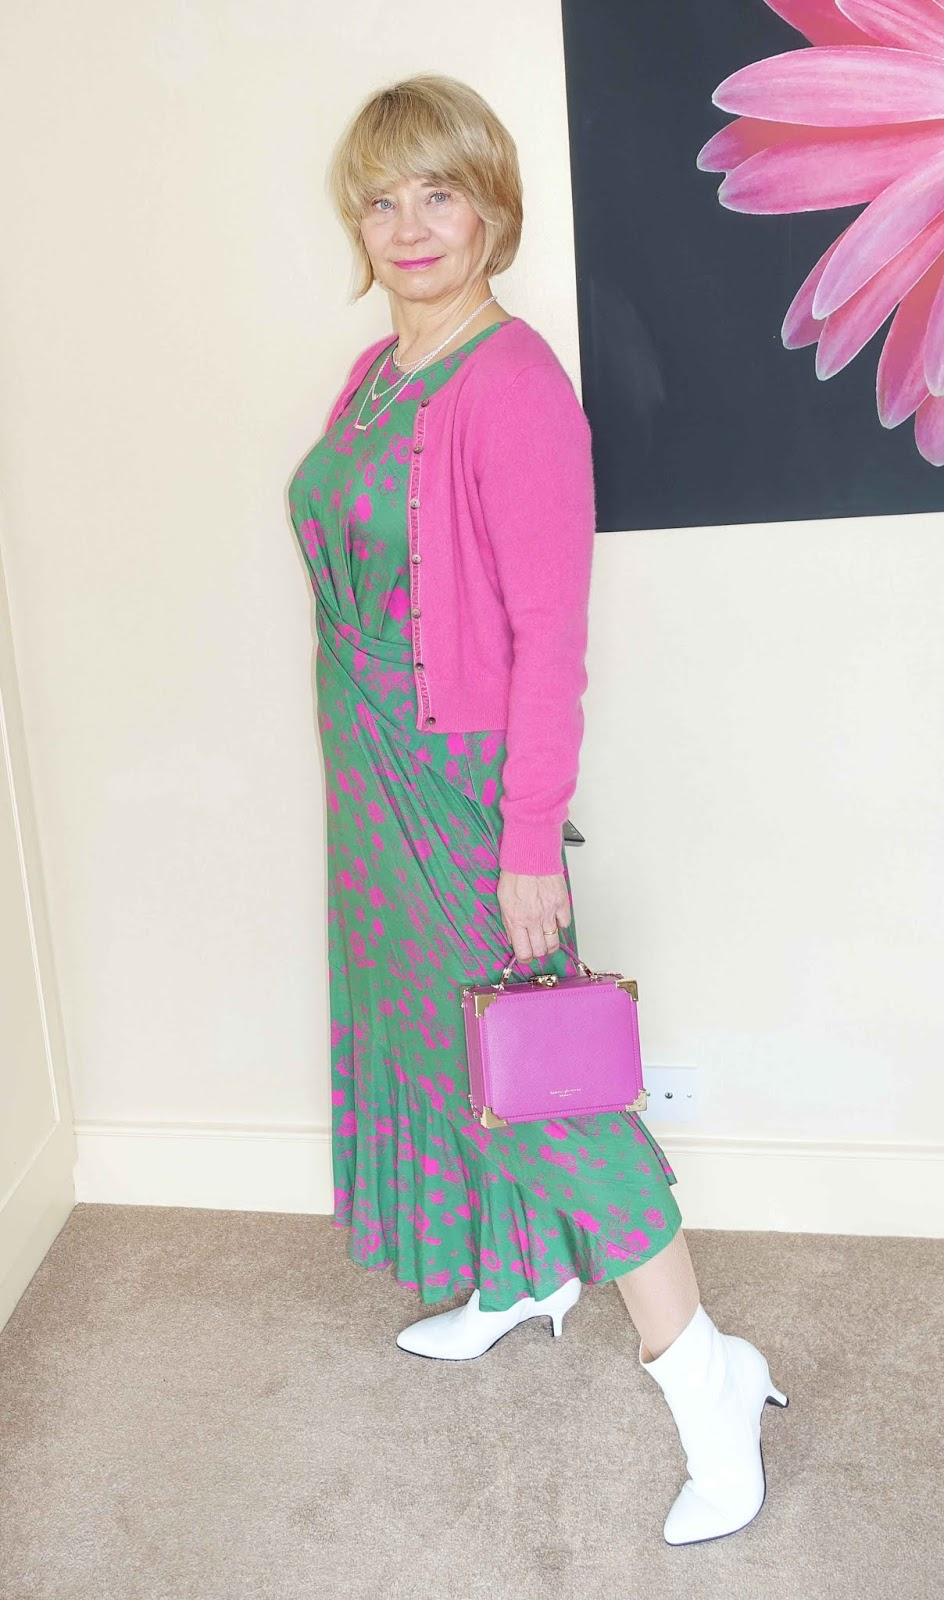 Adding a cashmere cardigan to a pink and green asymmetric midi dress makes it perfect for transitional dressing